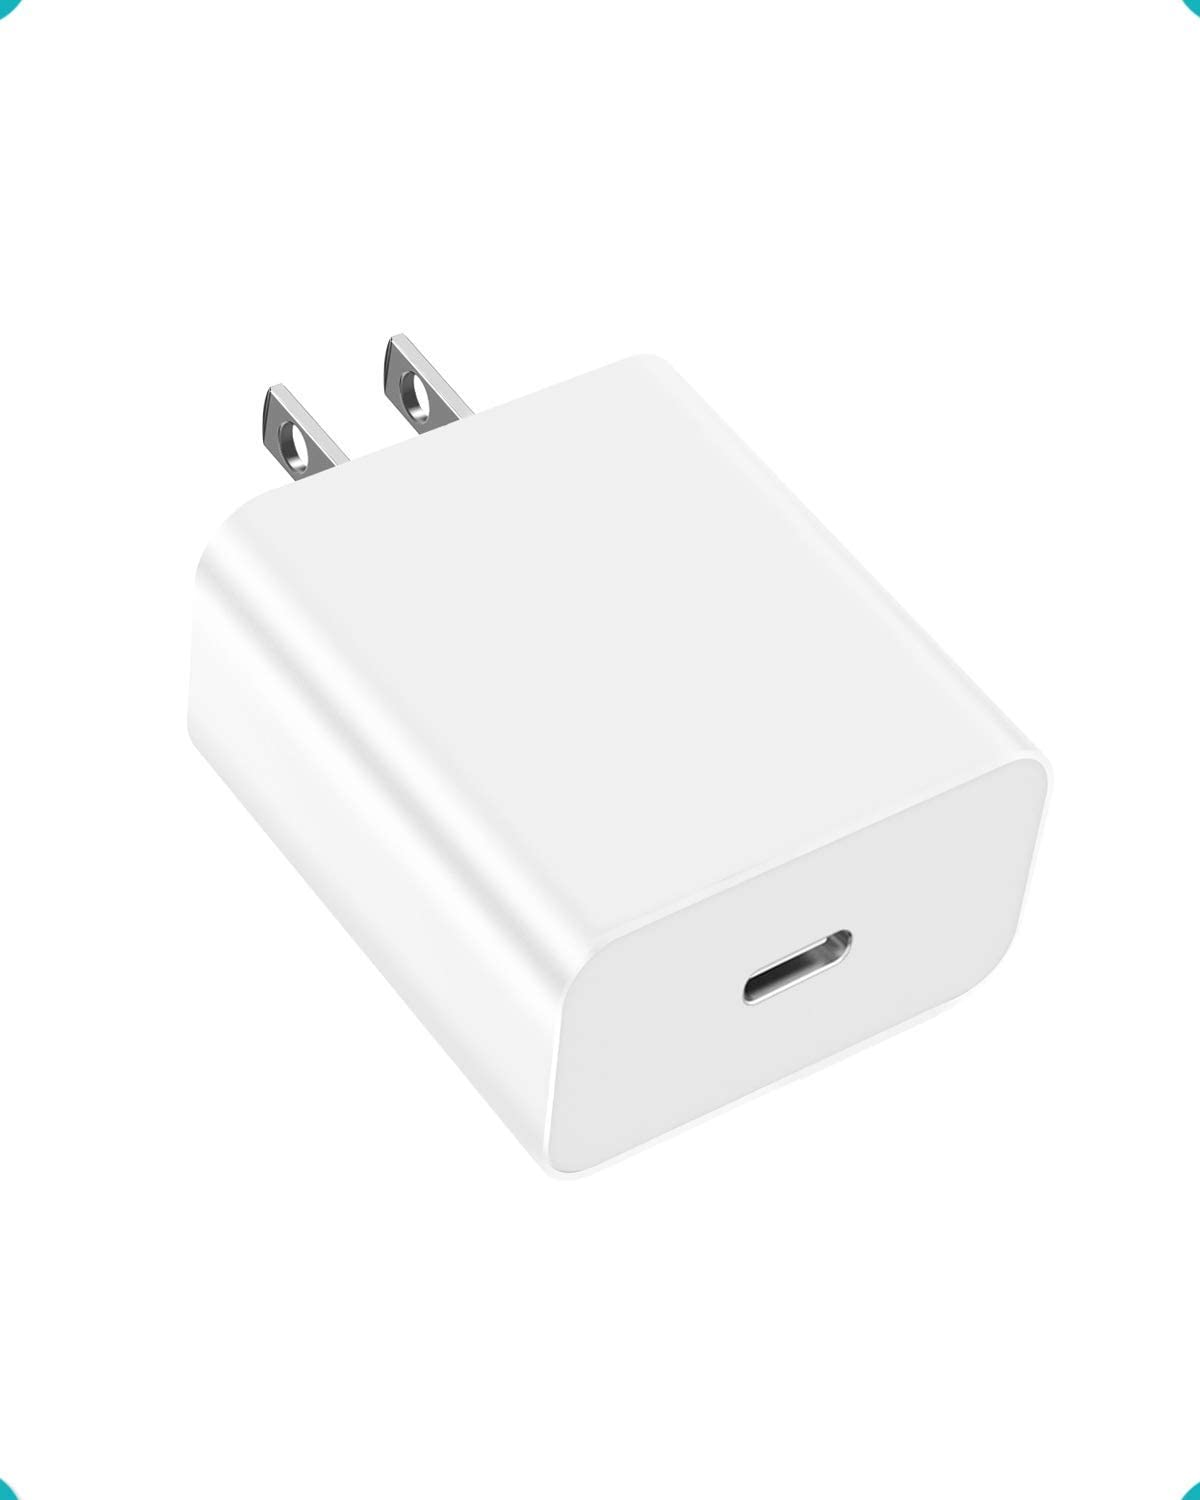 PD 18W USB Type C Wall Charger Plug Compatible with iPads, iPhones, Samsung Galaxy, Google Pixel, LG and More